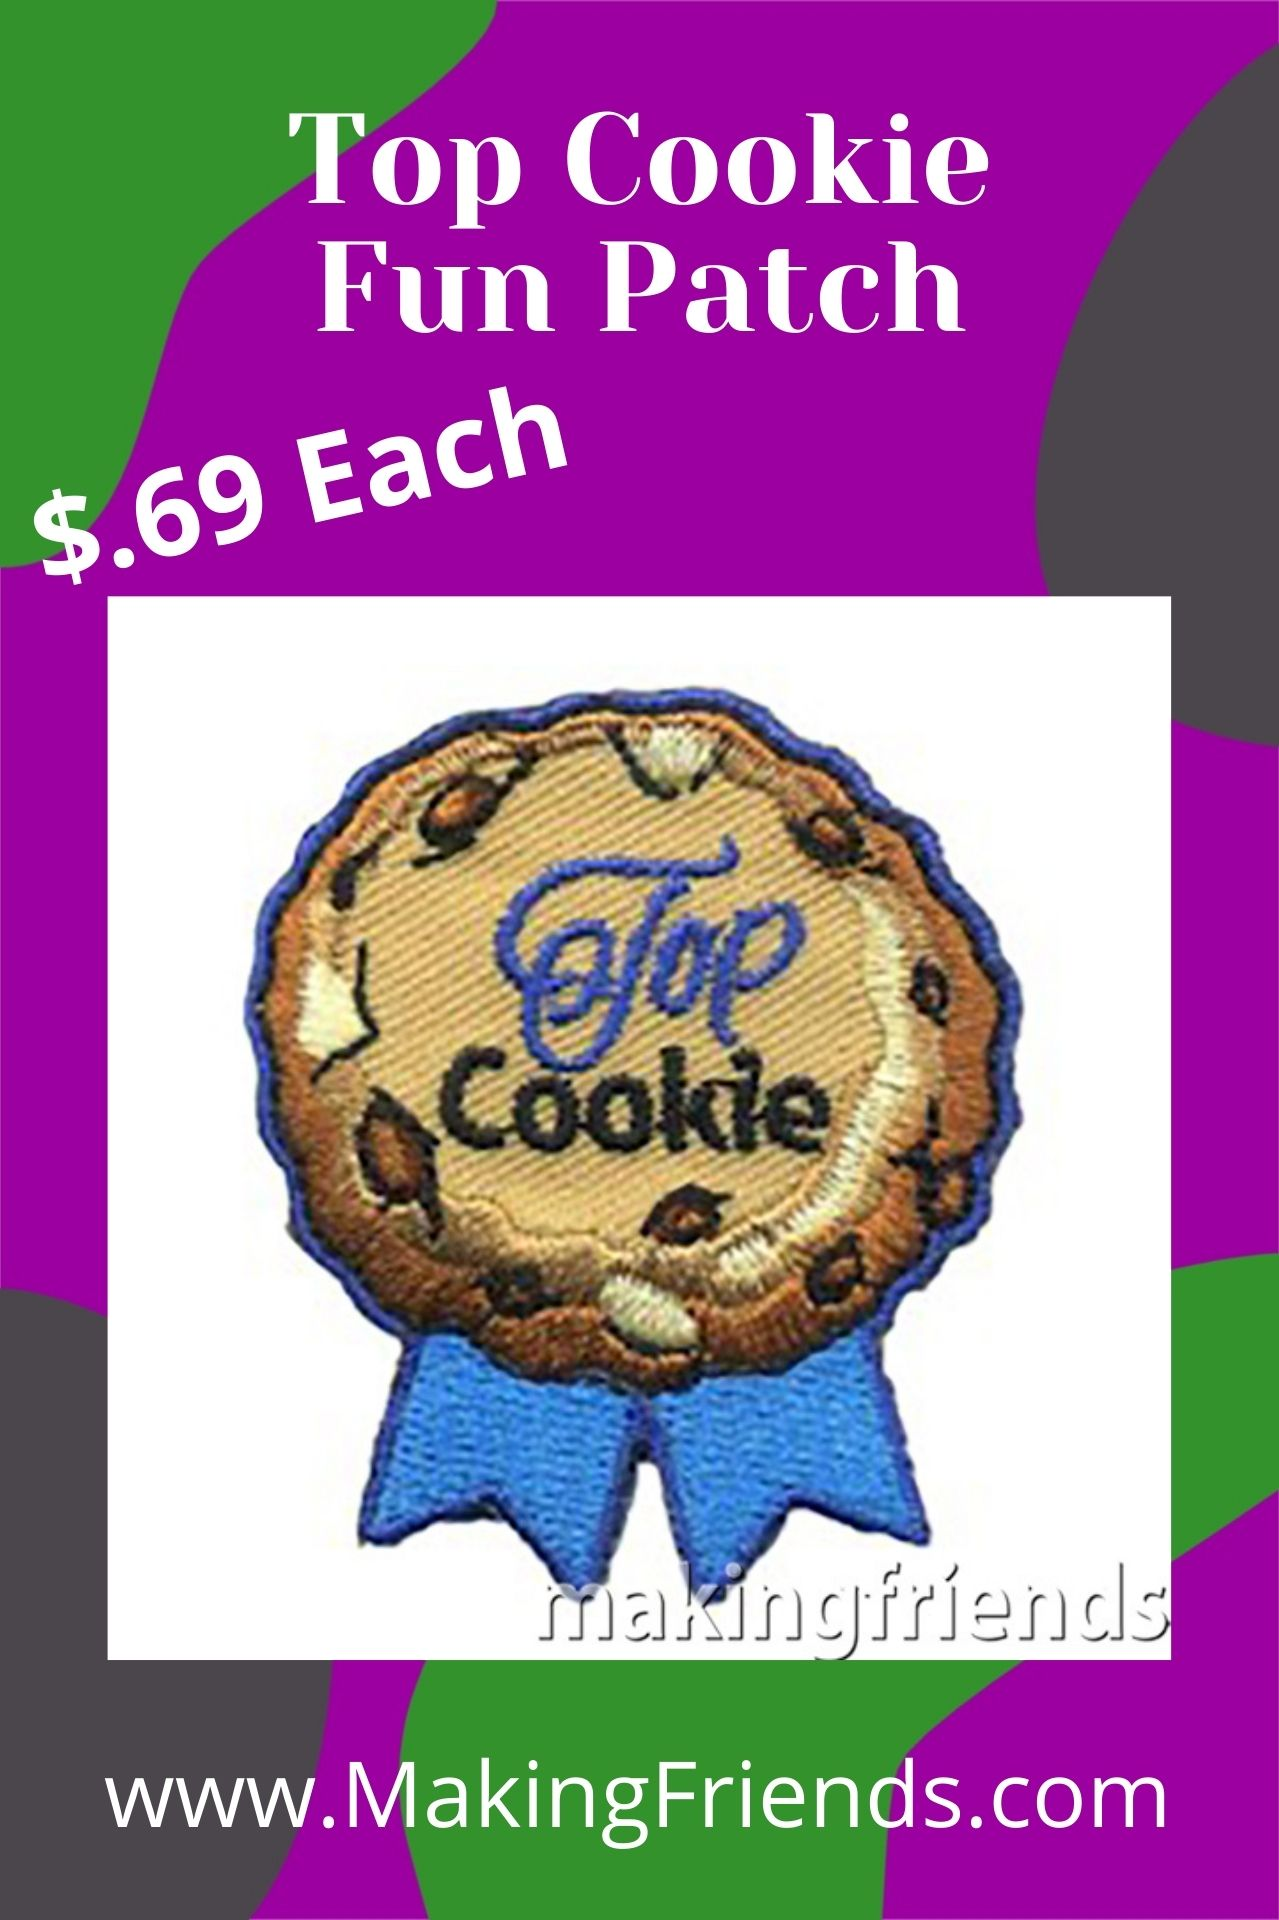 This extra-special Top Cookie fun patch to thank your top seller this cookie season. $.69 each, free shipping available! #makingfriends #topcookieseller #cookies #girlscoutcookies #girlscouts #cookiefun #cookieseason #funpatch #cookiepatch #girlscoutfunpatch via @gsleader411